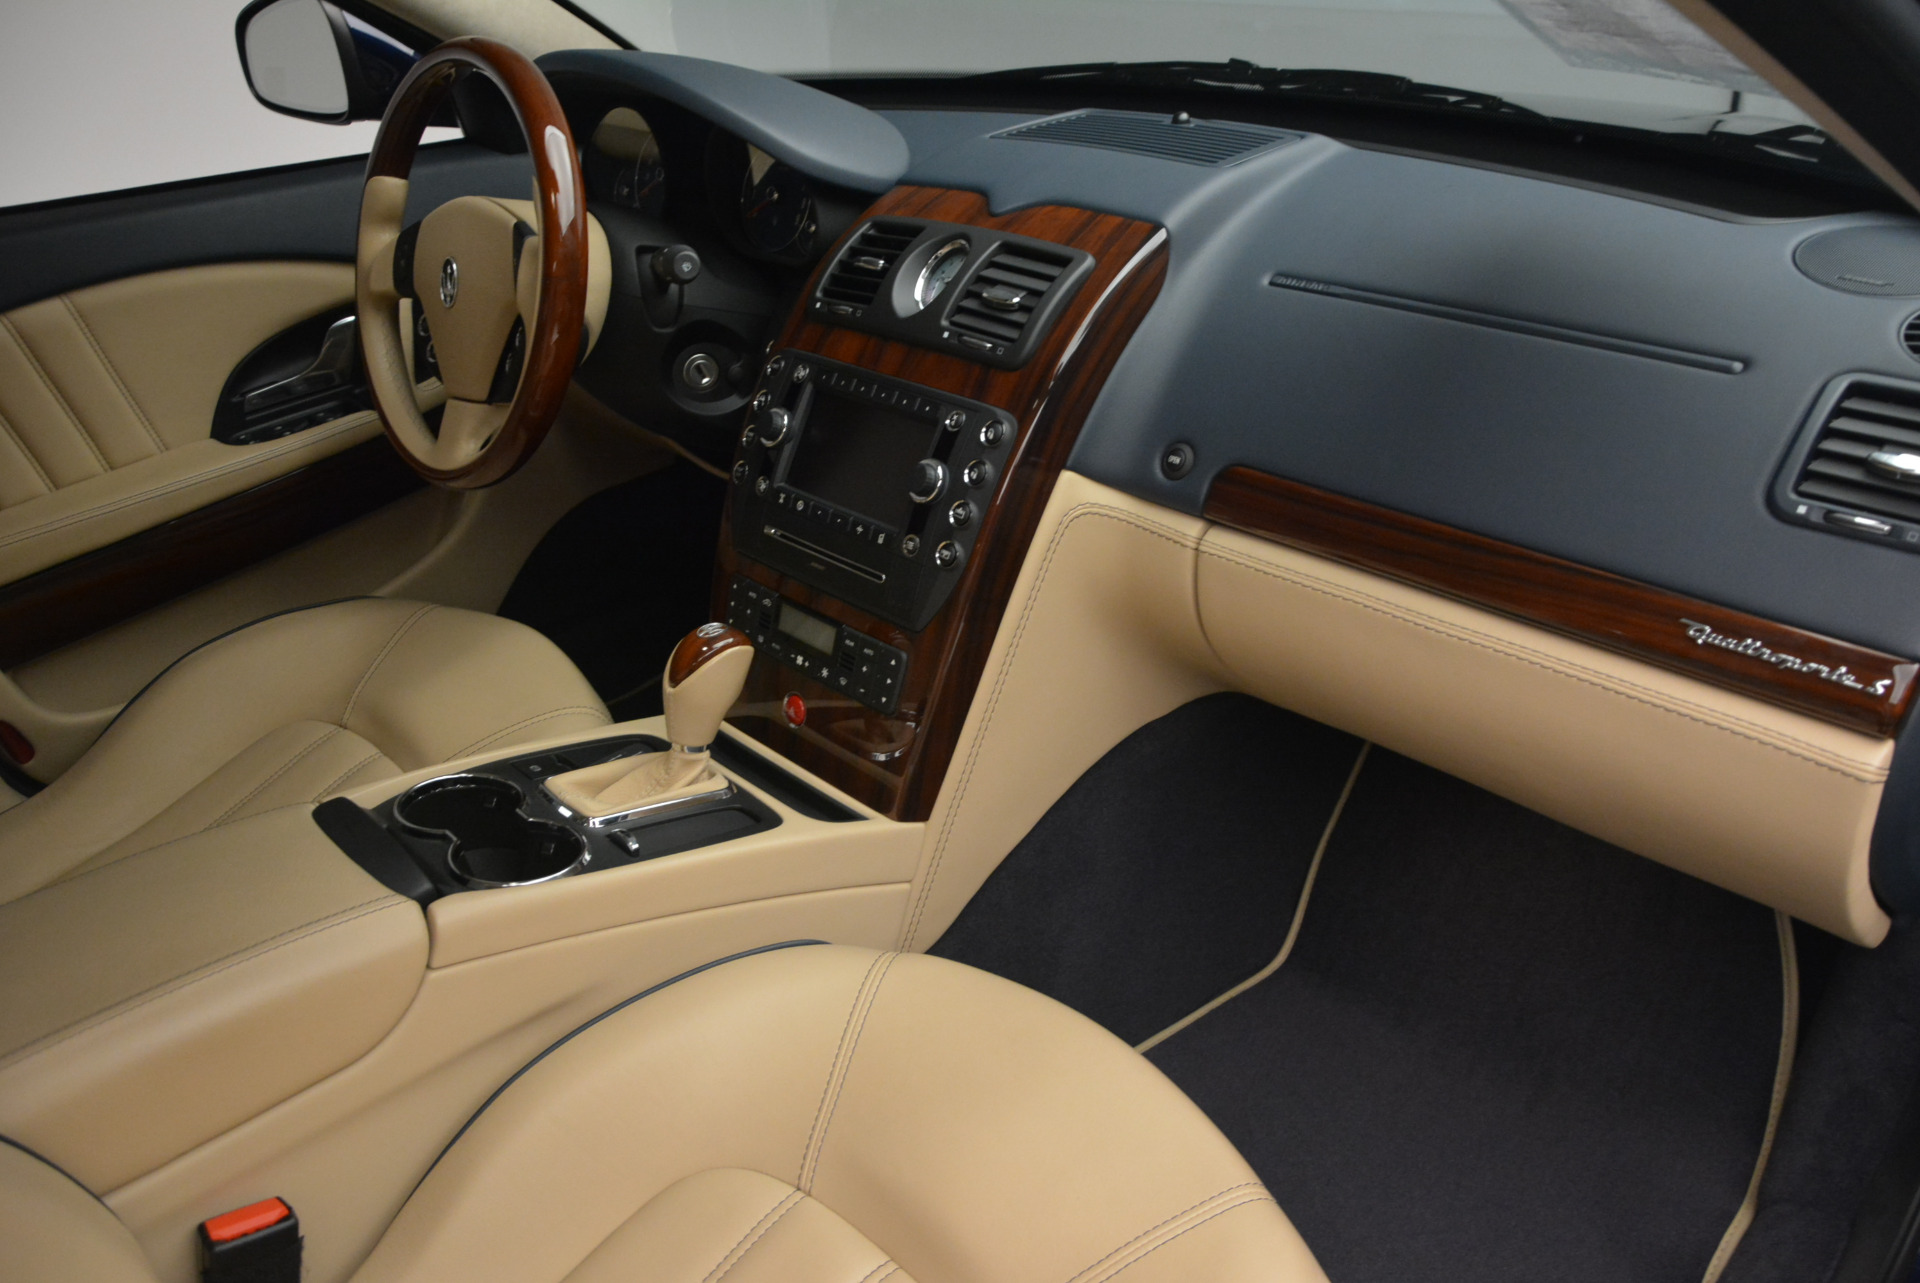 Used 2010 Maserati Quattroporte S For Sale In Greenwich, CT 795_p19